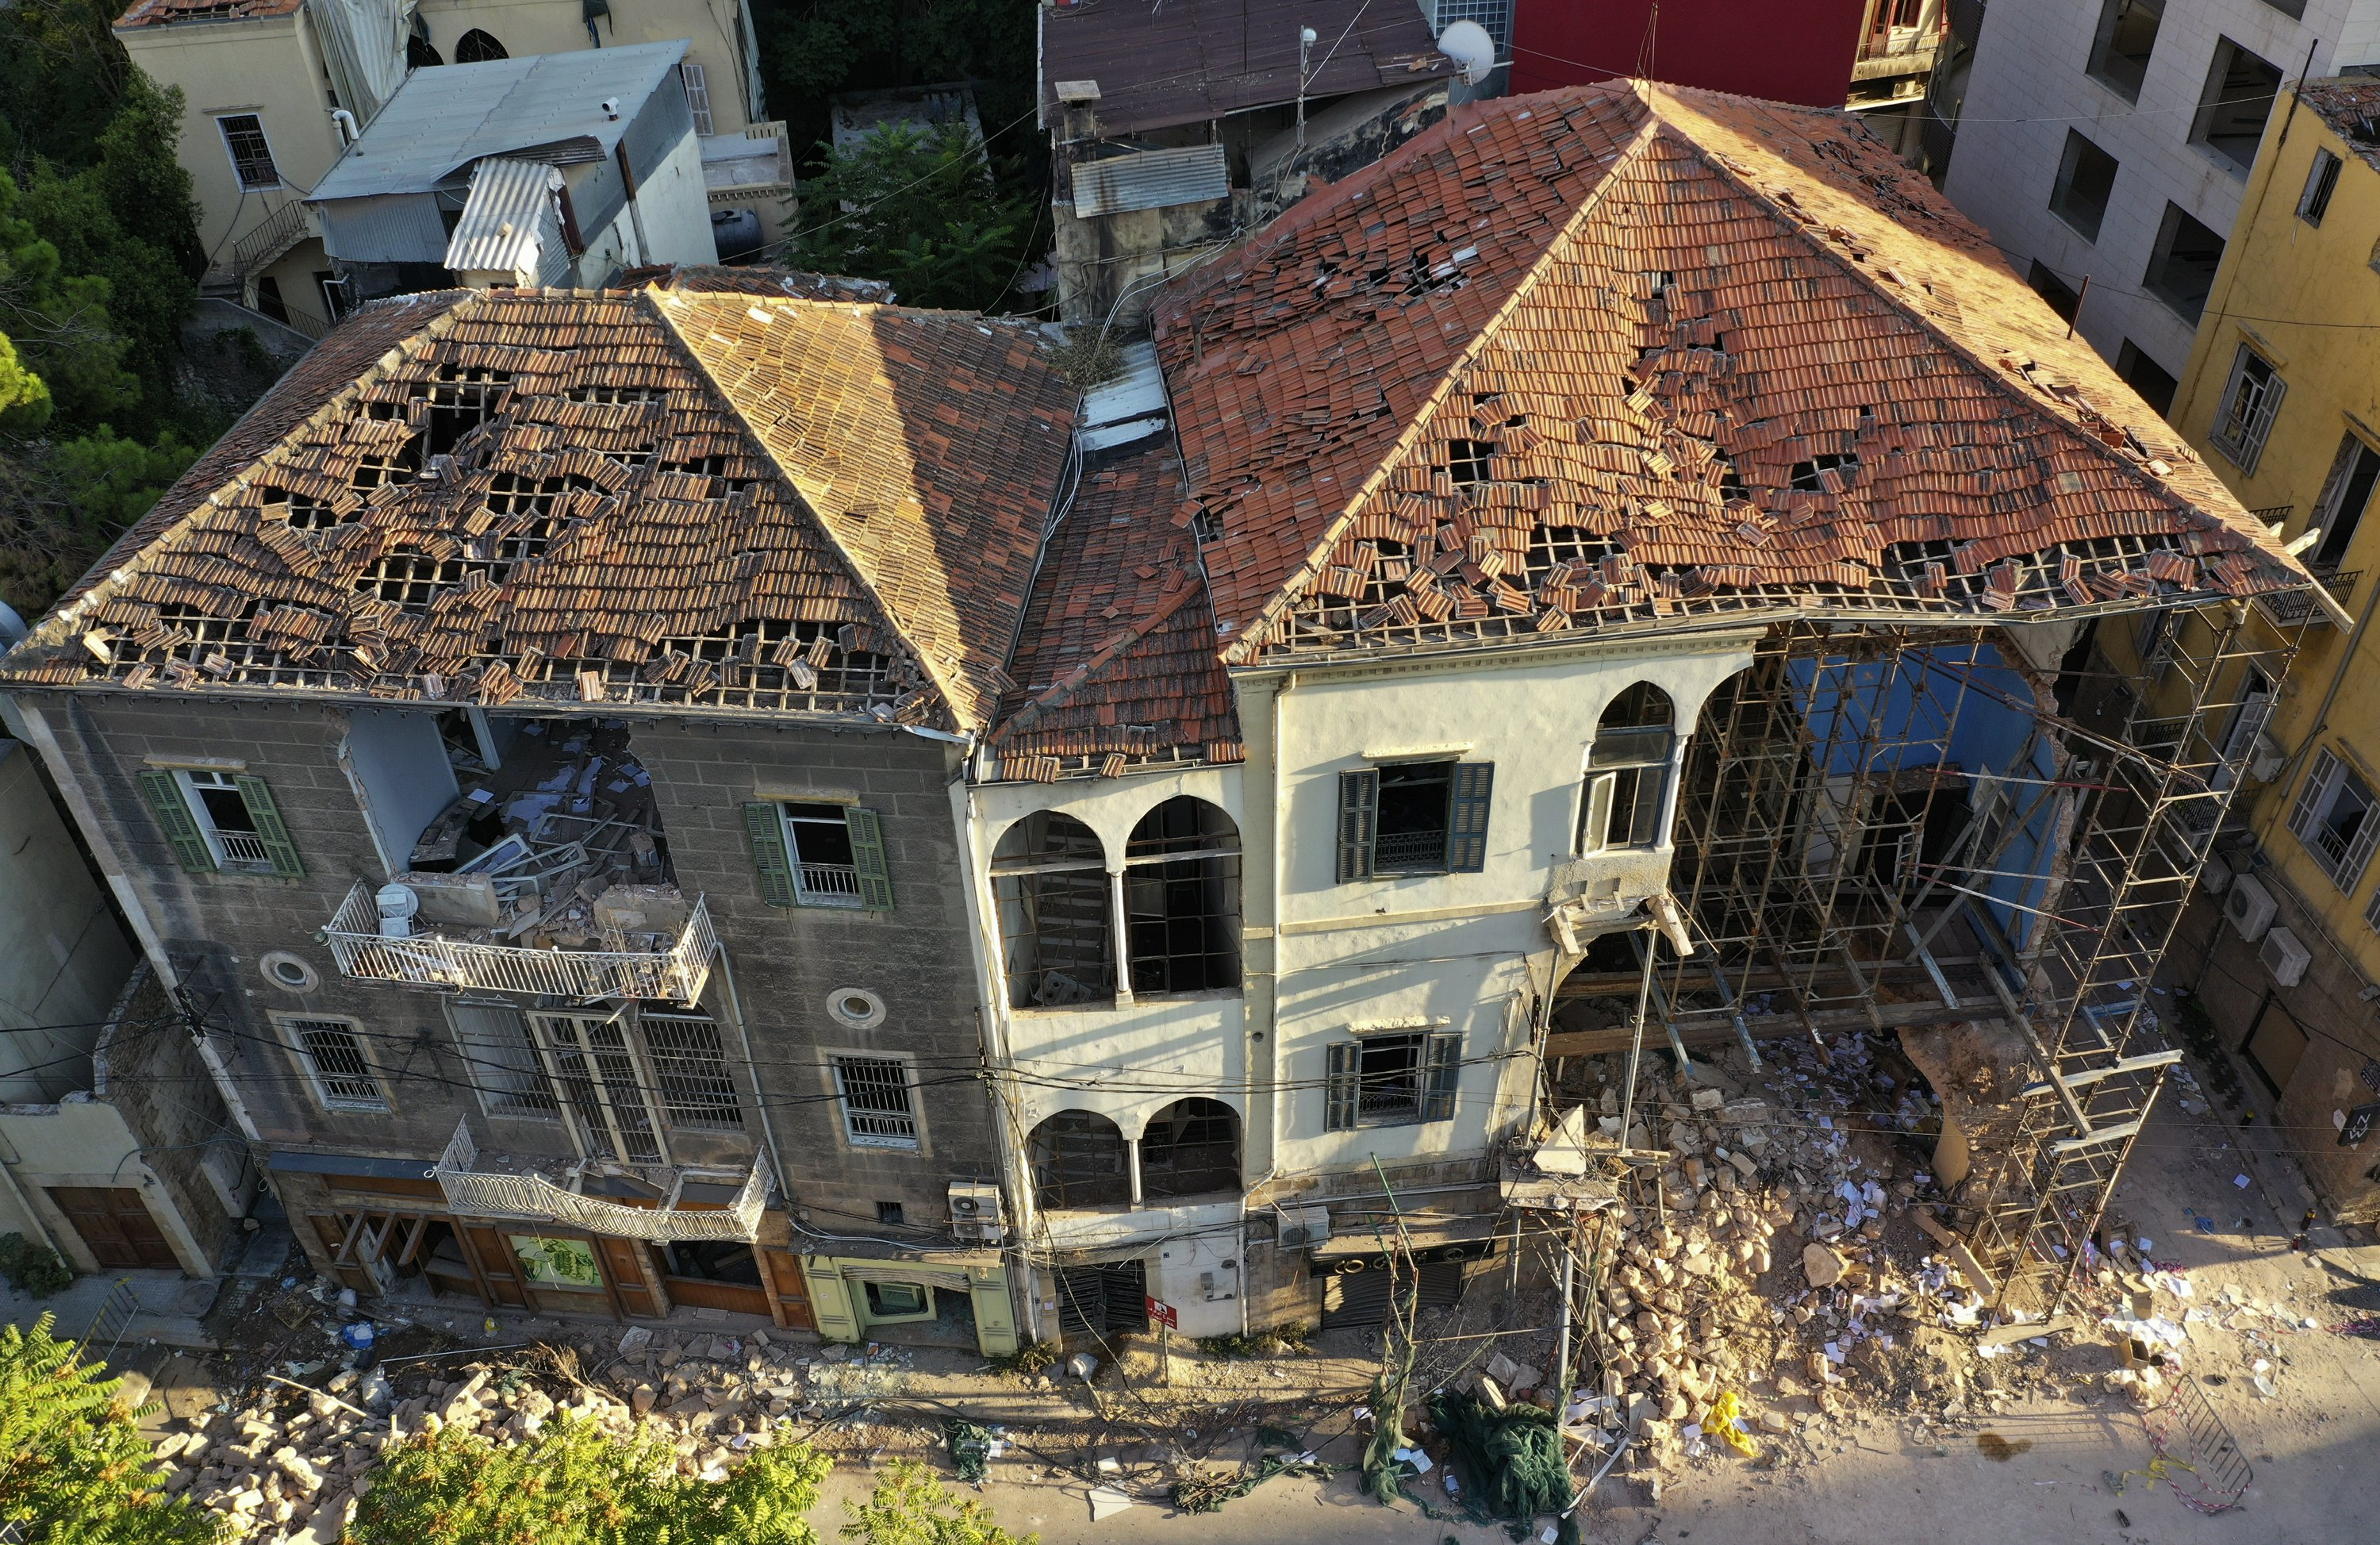 Beirut residents determined to save heritage lost to blast